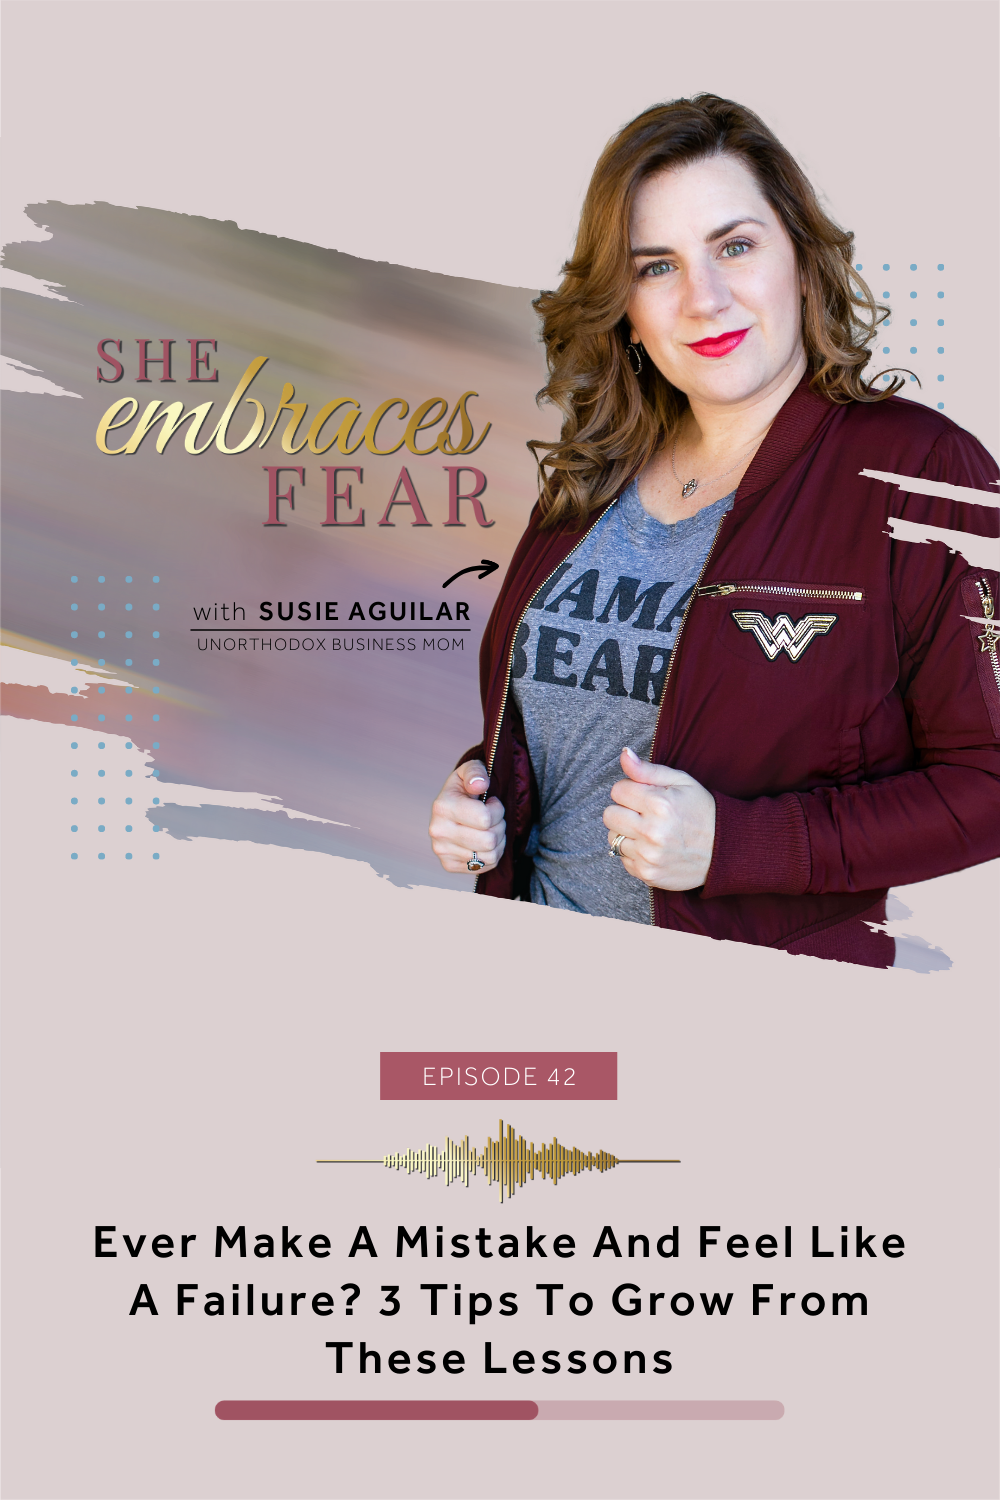 Ever felt like a failure because of a mistake? Then this episode is for you! My belief is that through the most challenging events, we have opportunity for growth.